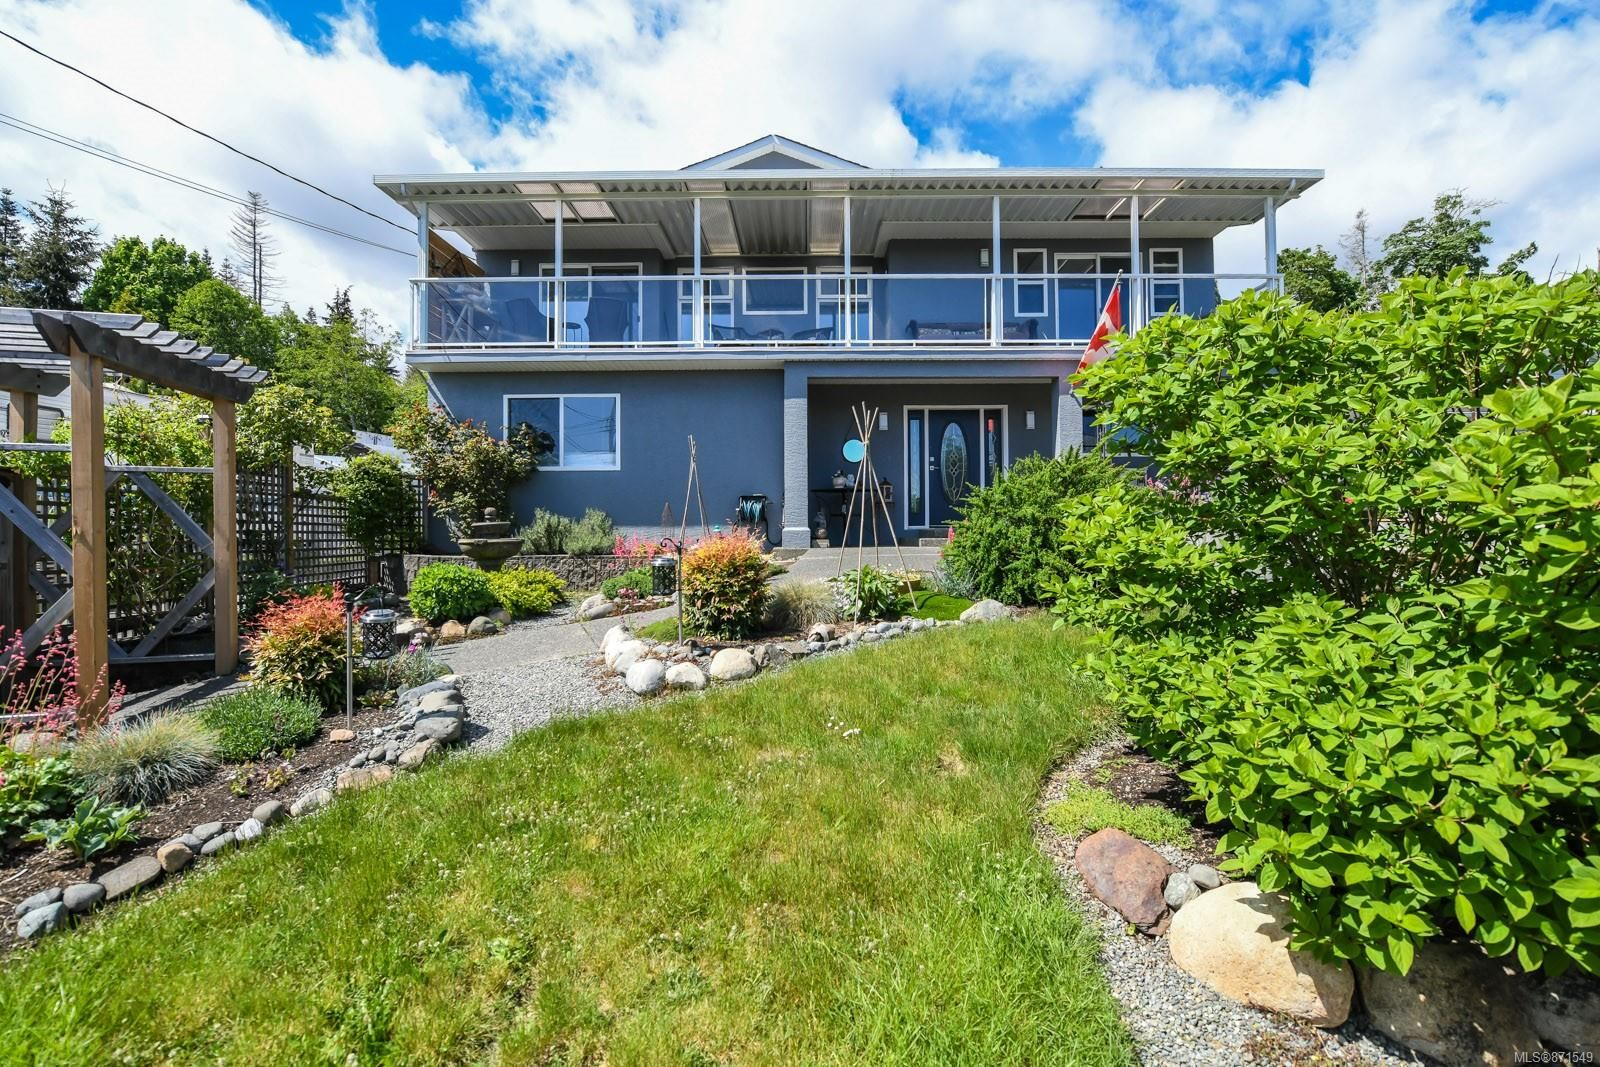 Main Photo: 5523 Tappin St in : CV Union Bay/Fanny Bay House for sale (Comox Valley)  : MLS®# 871549